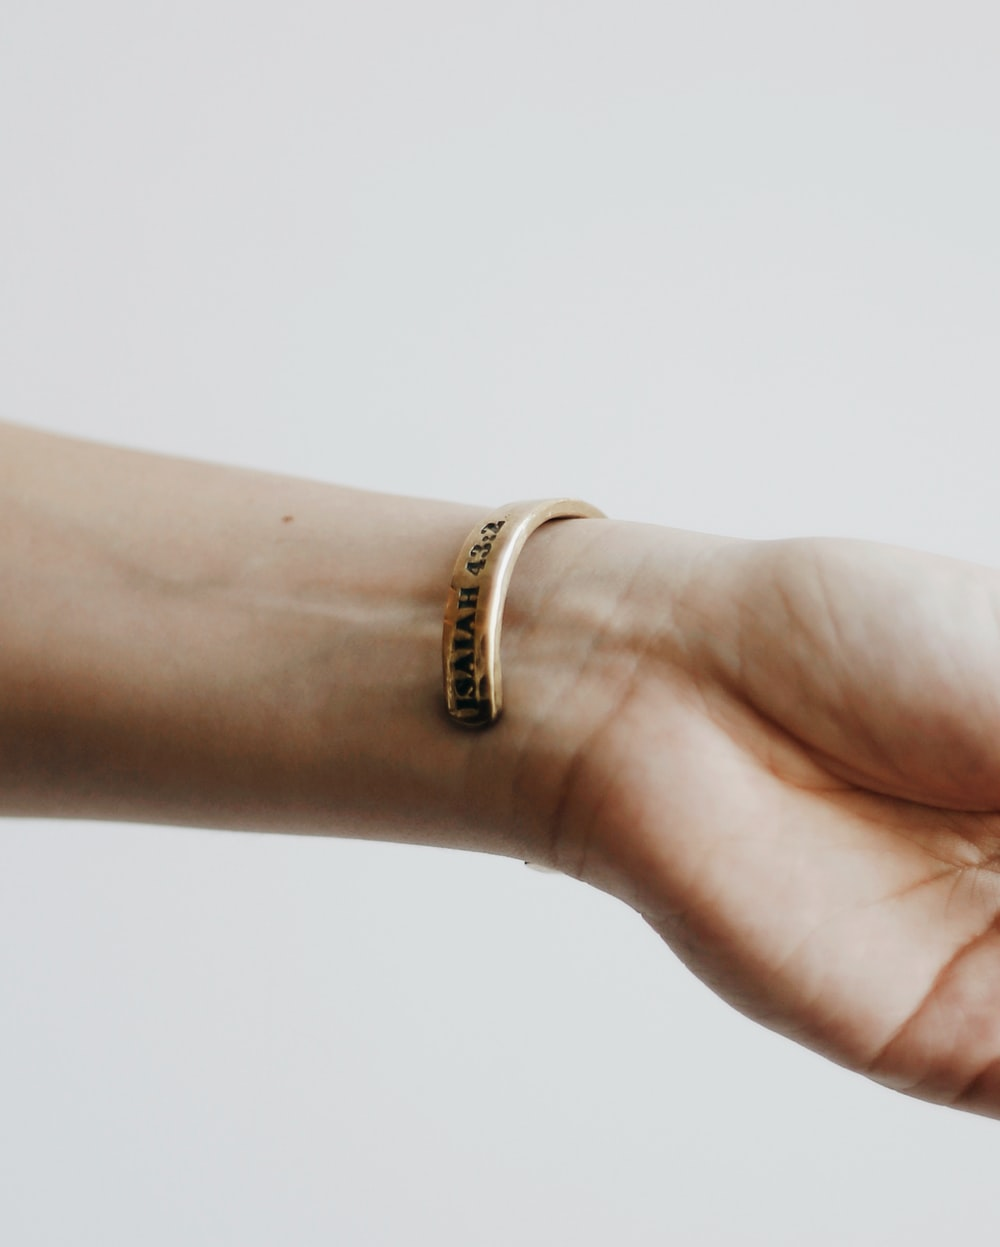 person wearing gold ring with diamond